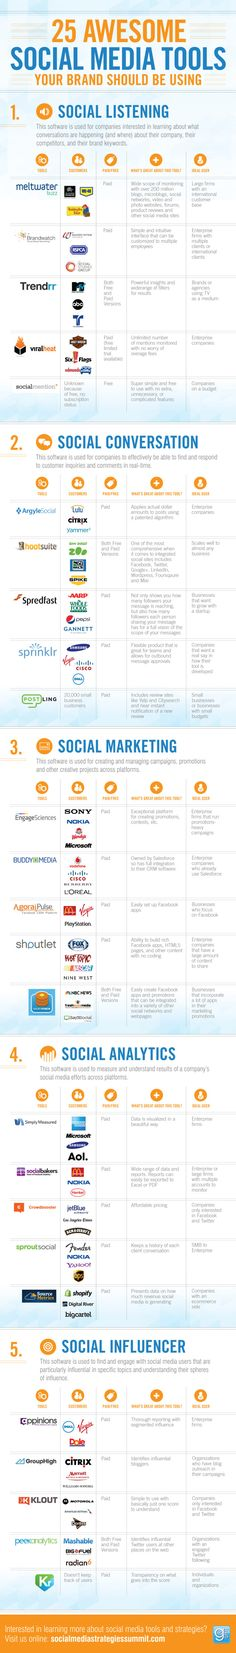 25 Social business tools that rock!